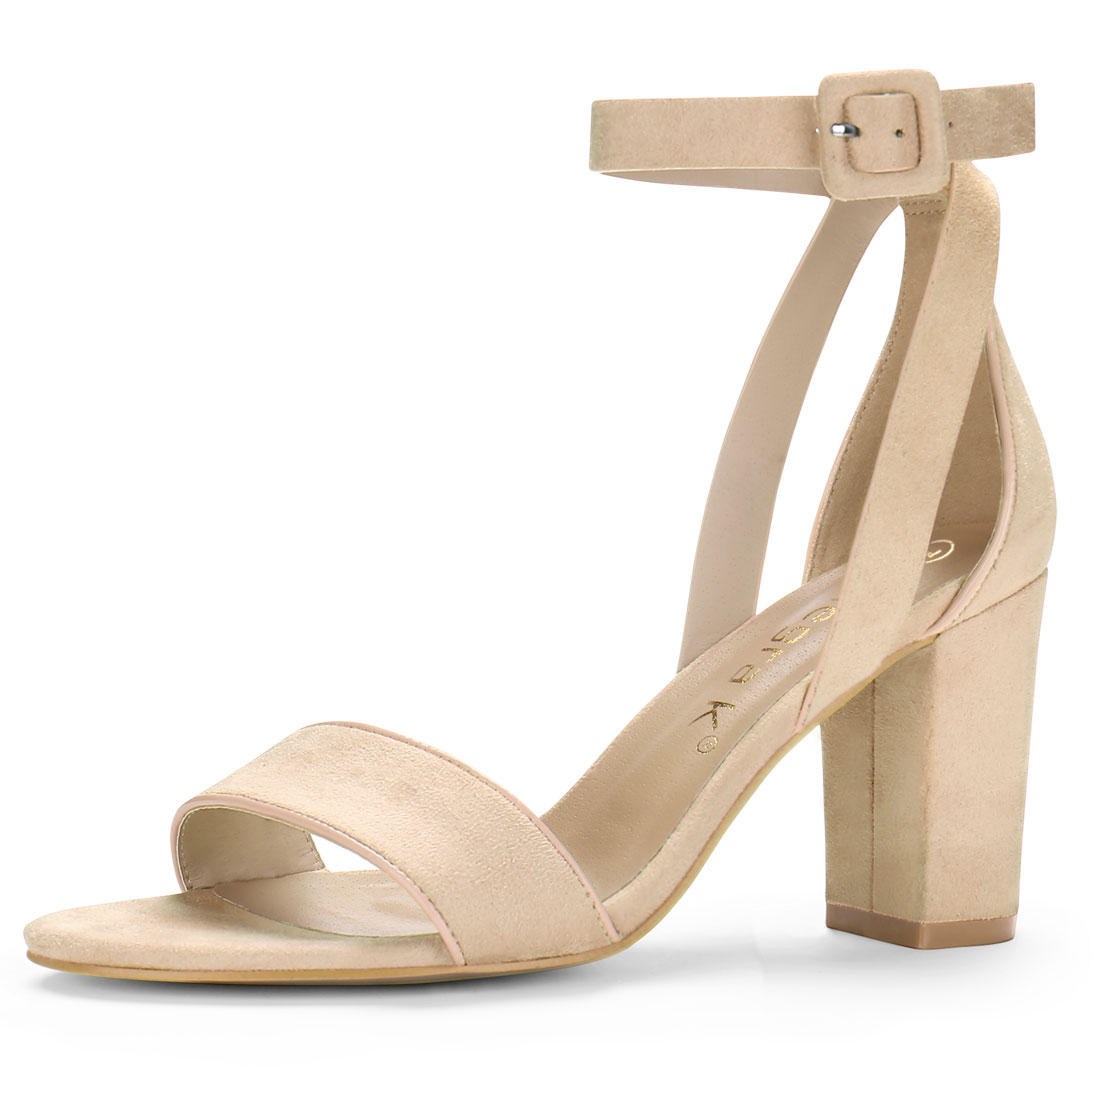 Women PU Panel Piped Chunky Heel Ankle Strap Sandals Beige US 6